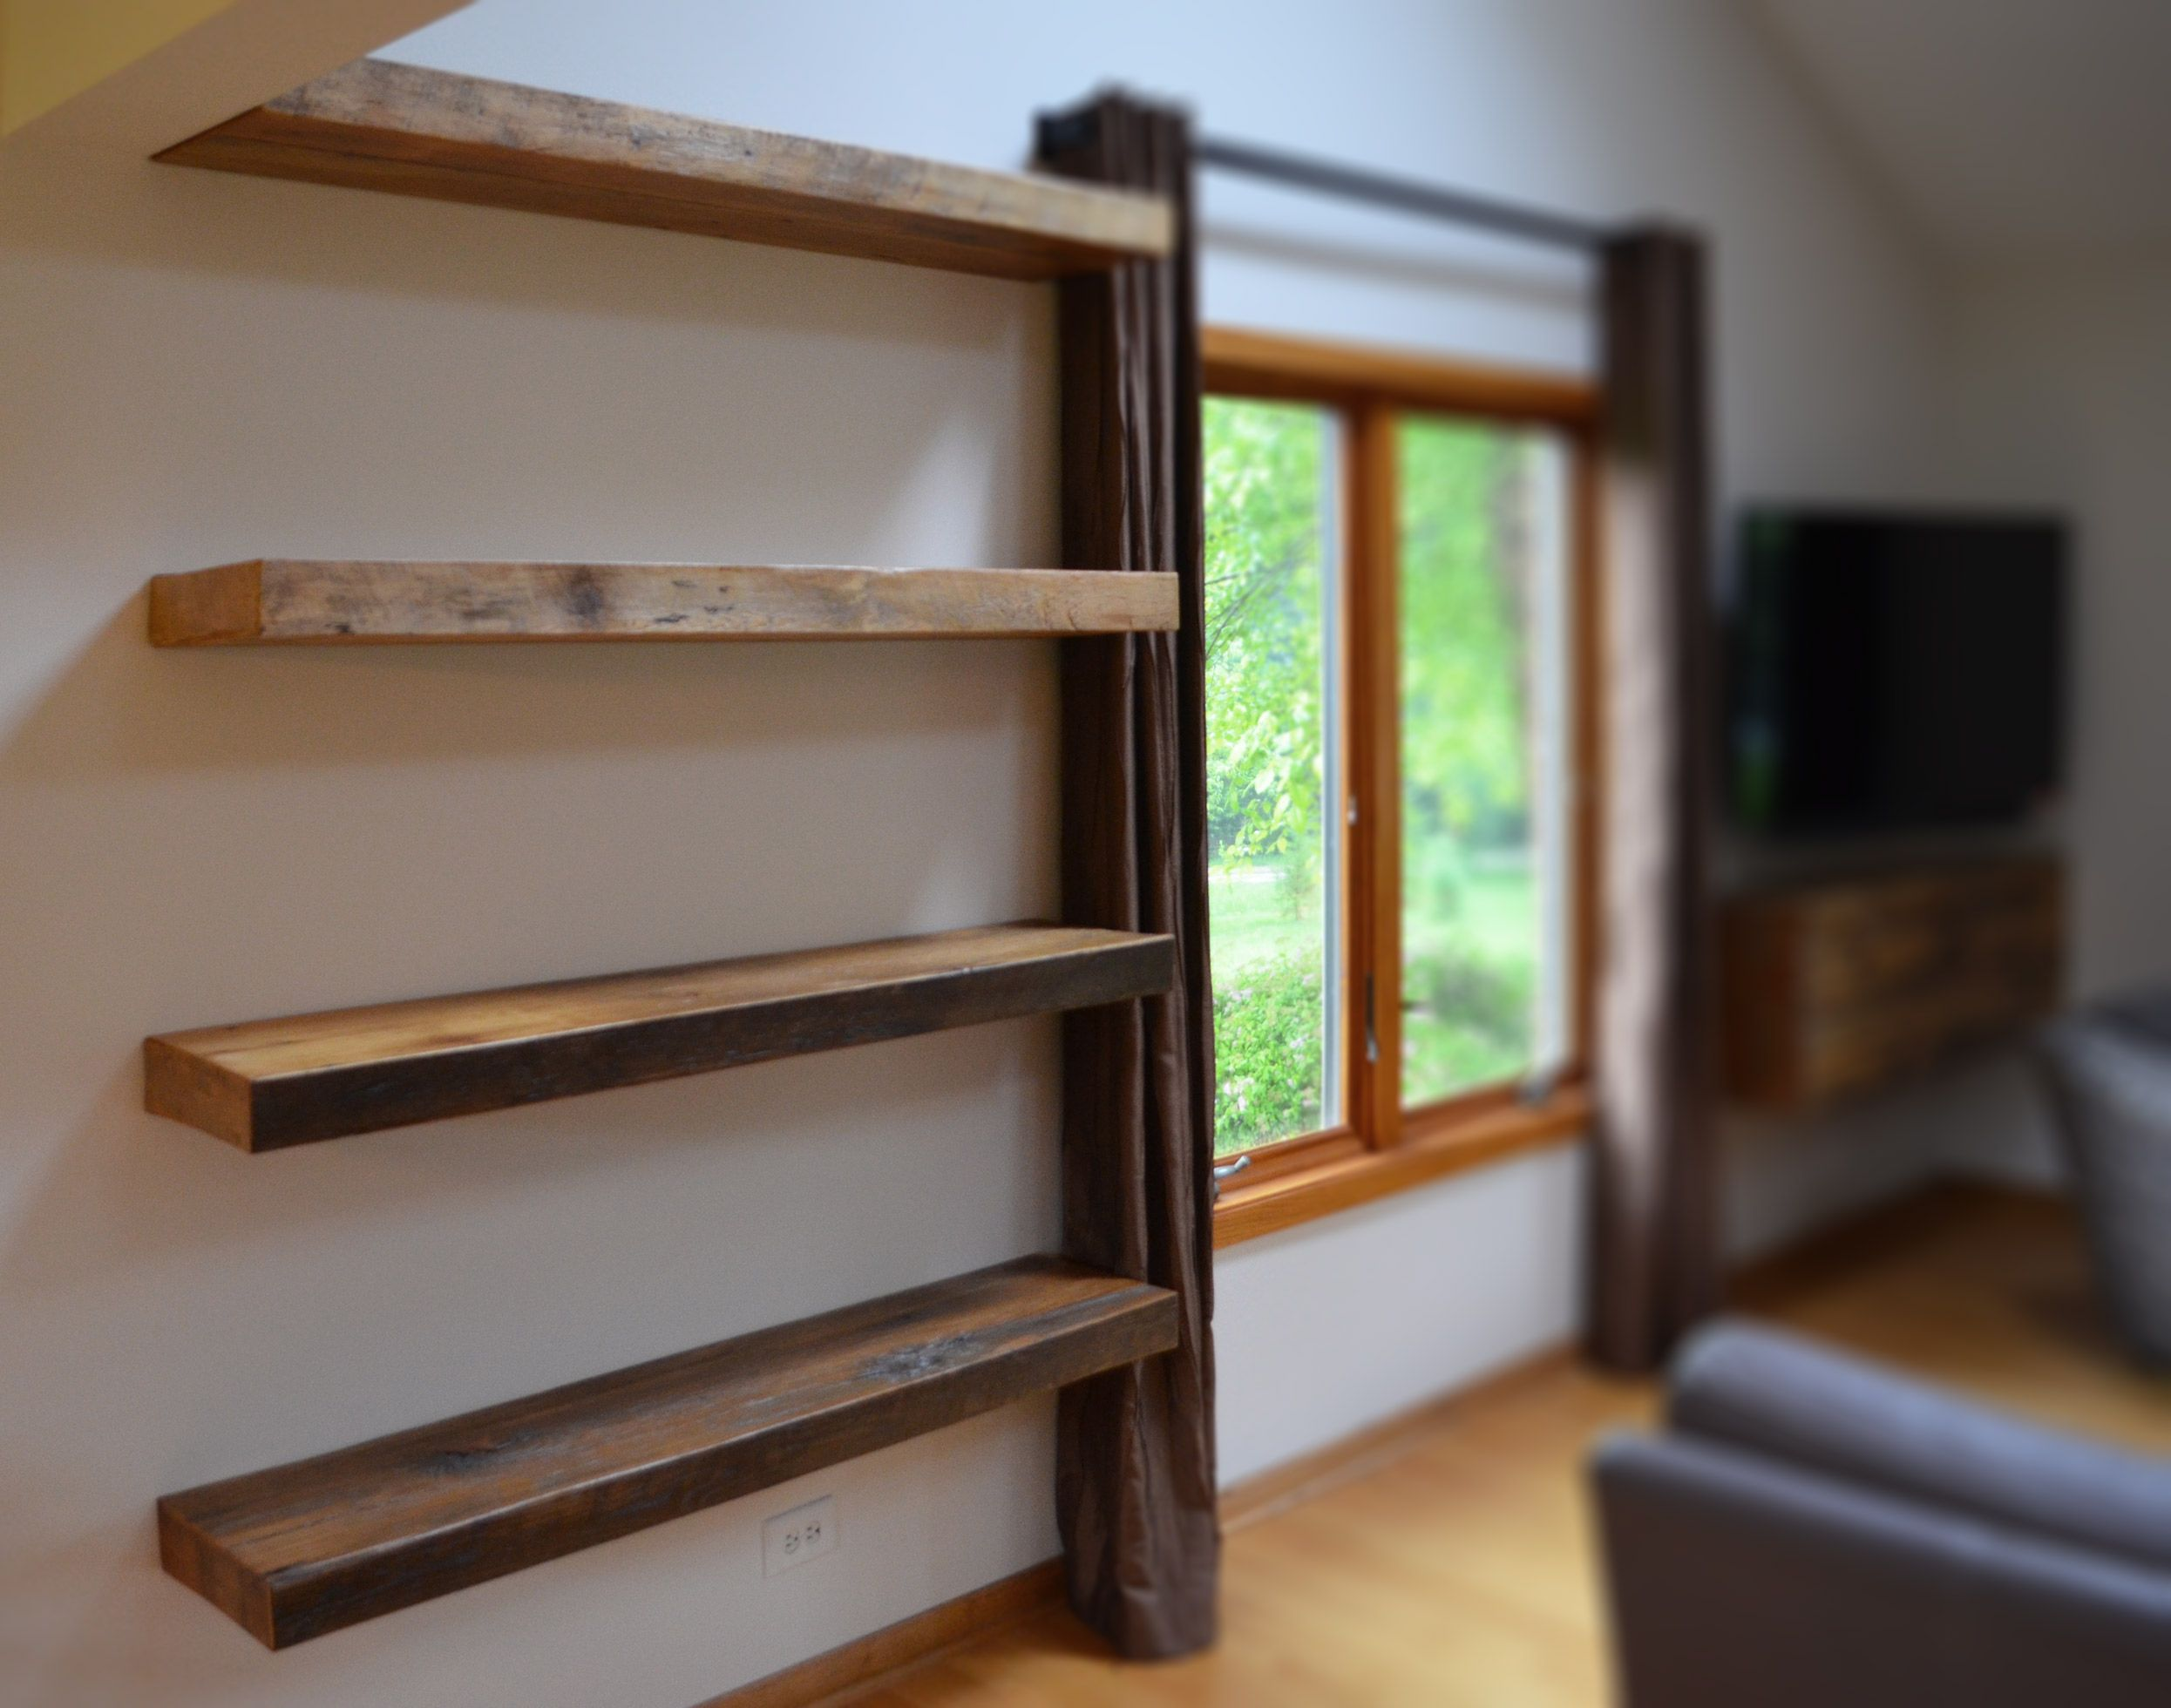 Artistic Hand Made Rustic Floating Shelves By Abodeacious Floating Shelves Designs Floating Shelves Design Ideas furniture Floating Shelves Design